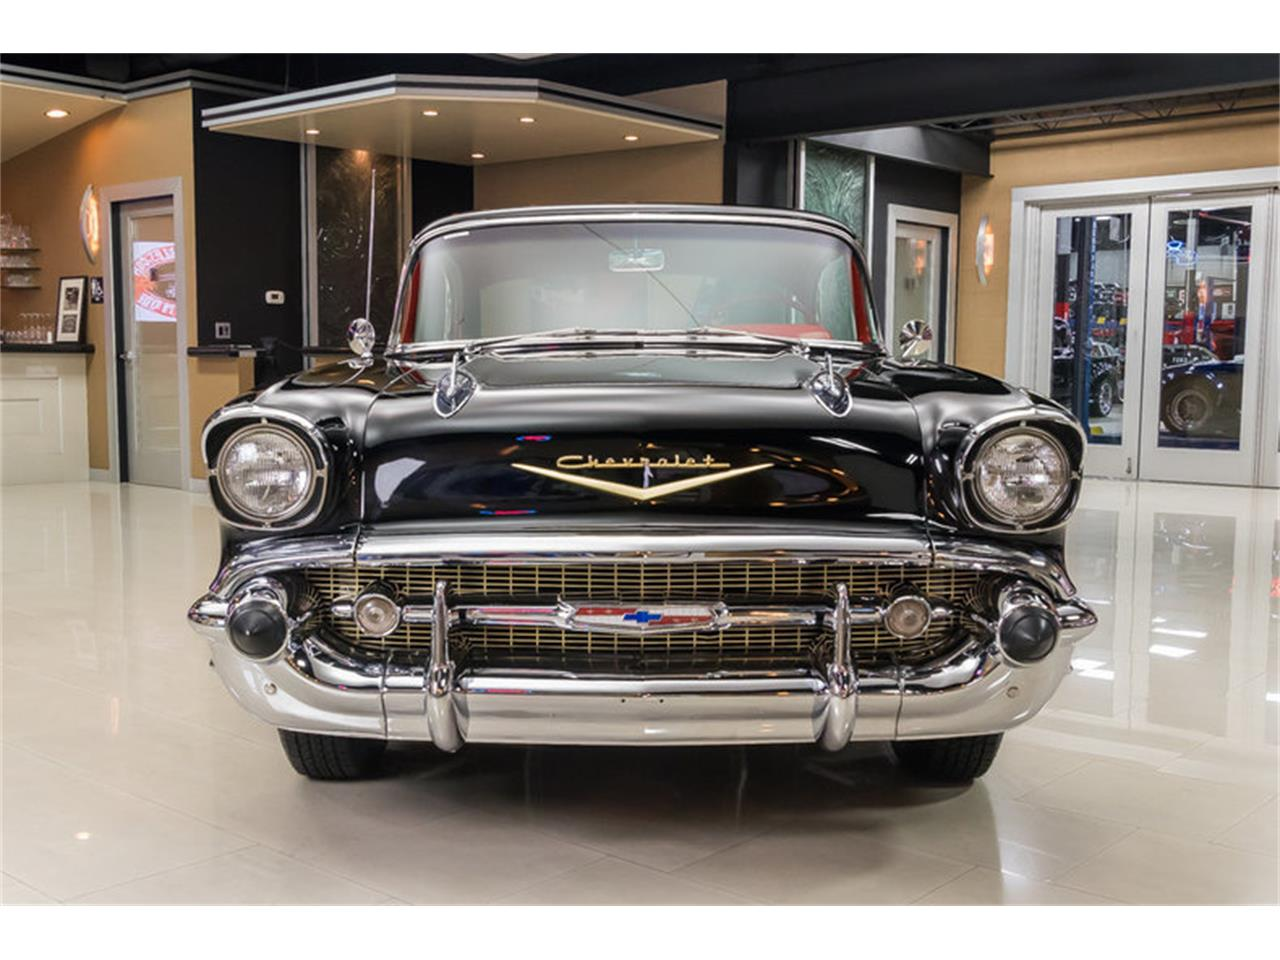 Large Picture of '57 Chevrolet Bel Air located in Michigan - $59,900.00 Offered by Vanguard Motor Sales - M90R